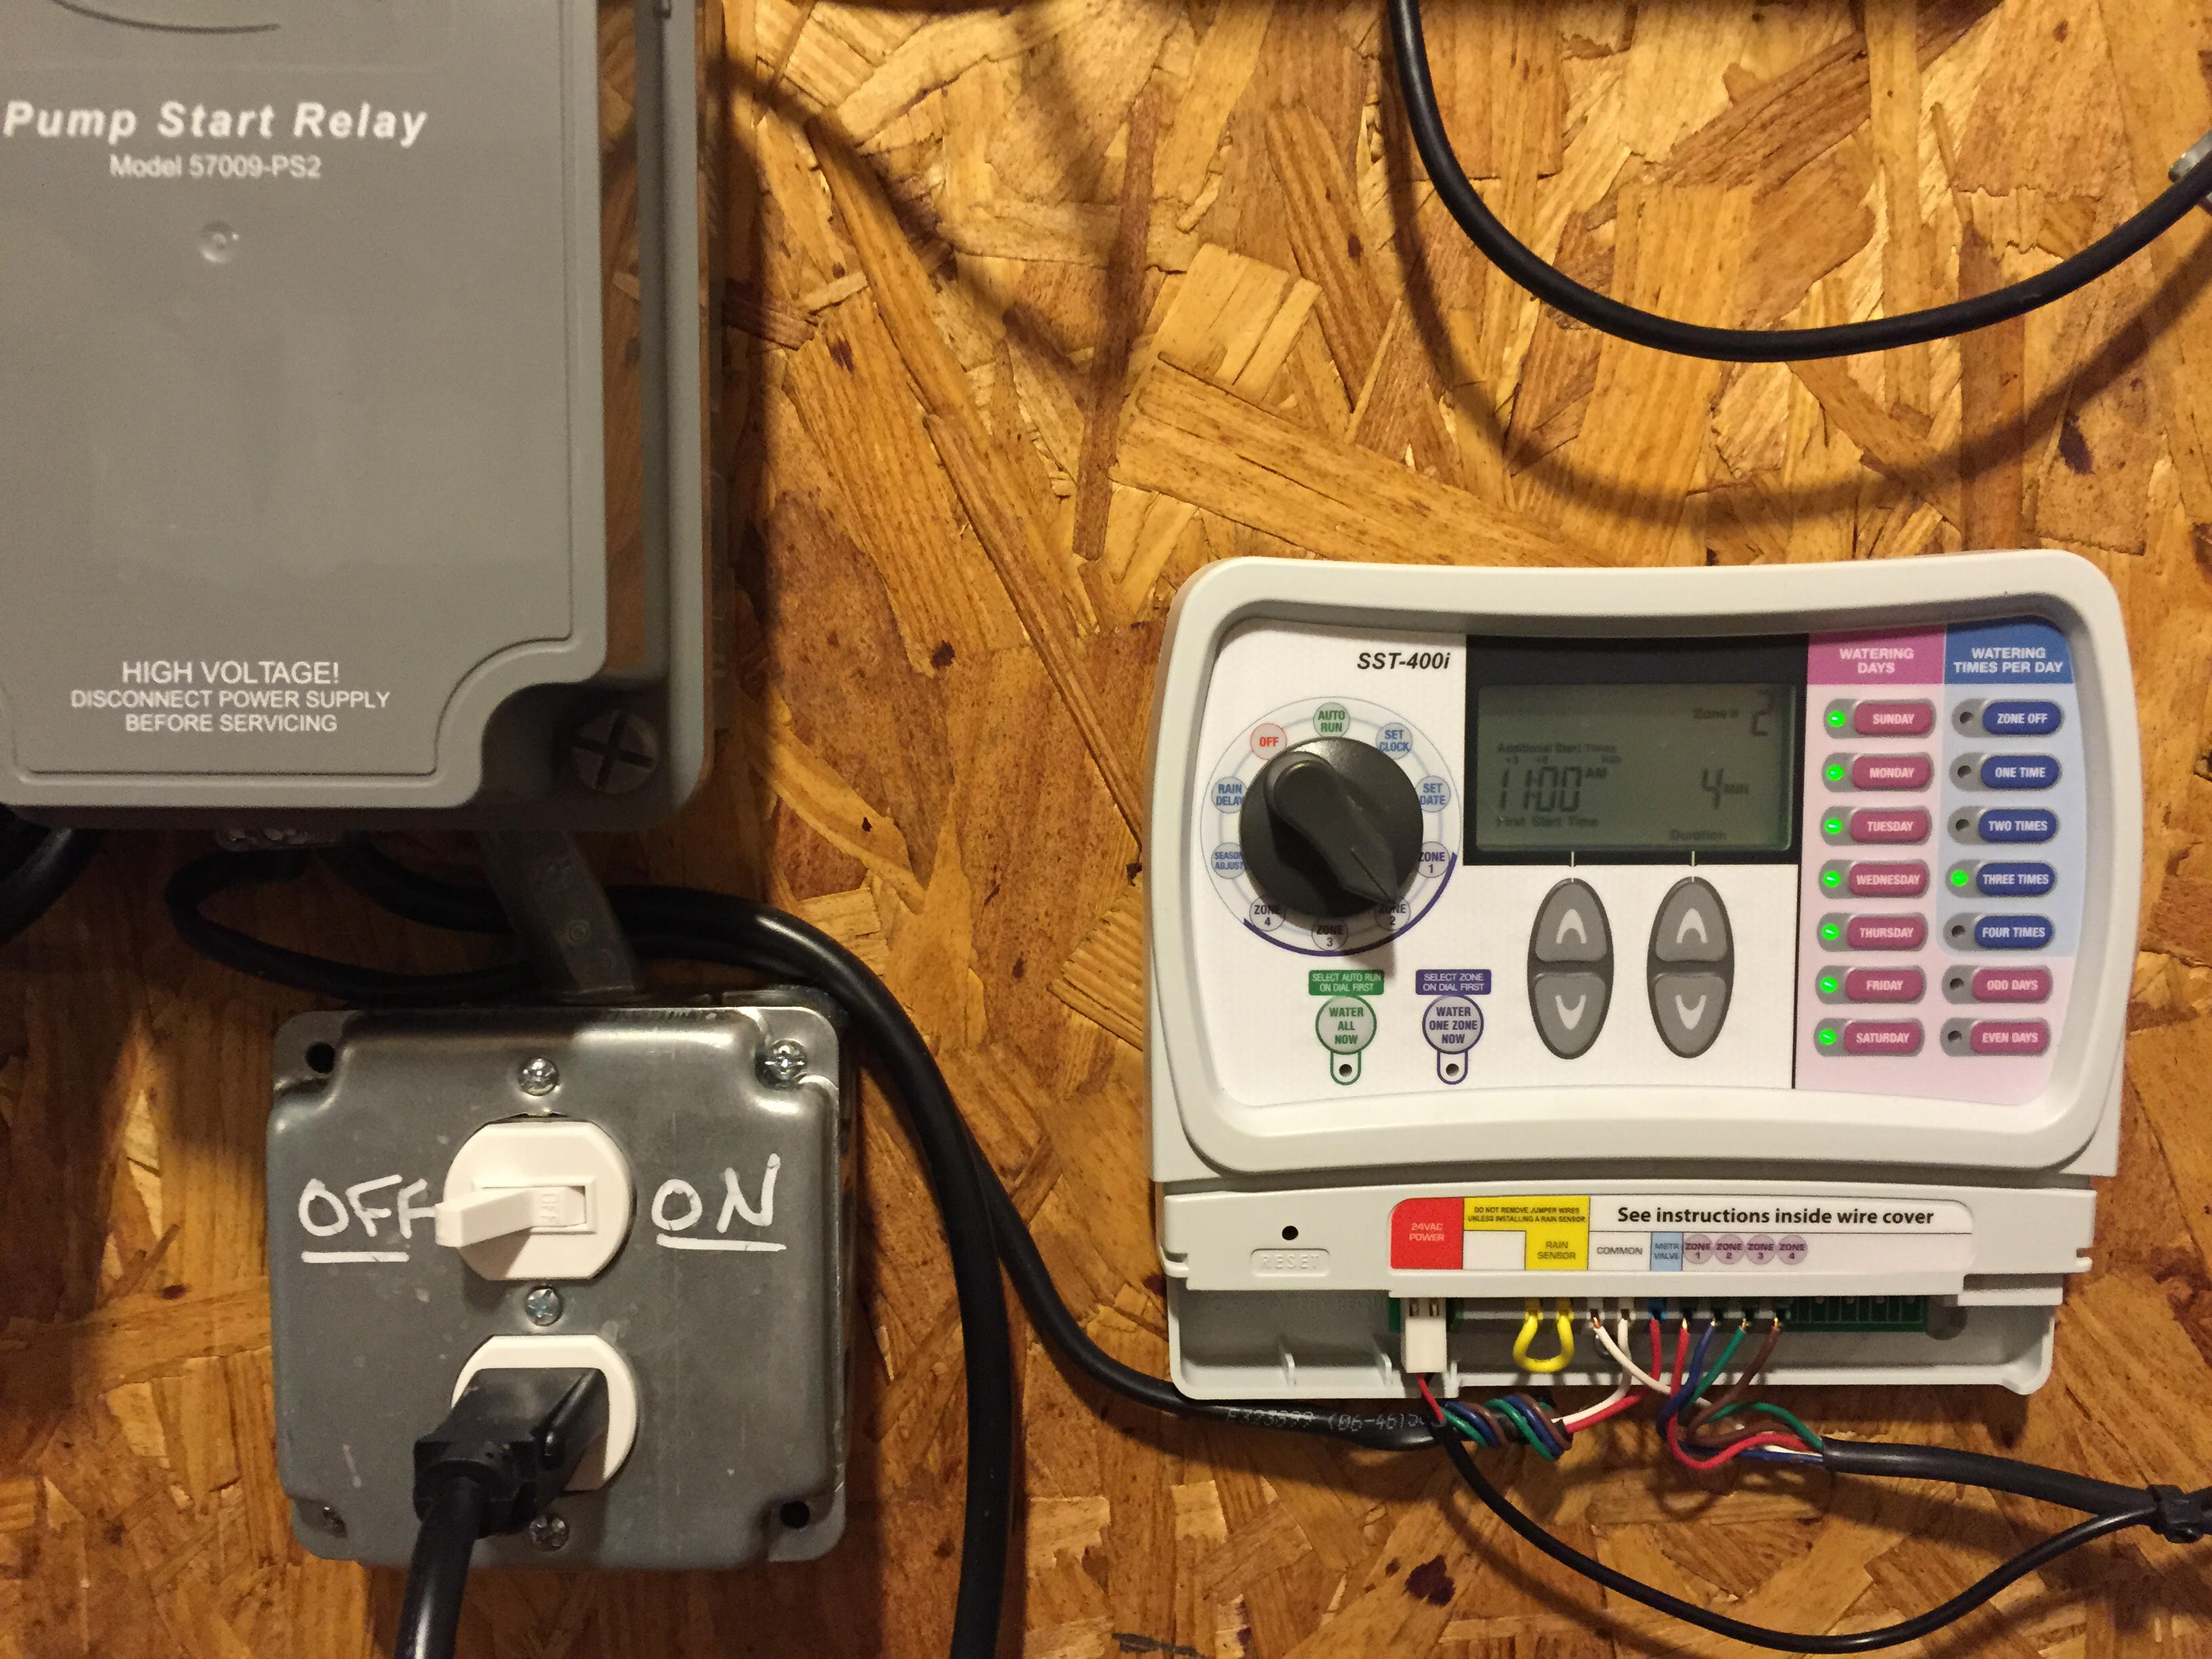 Pump Start Relay Wiring Diagram from opensprinkler.com